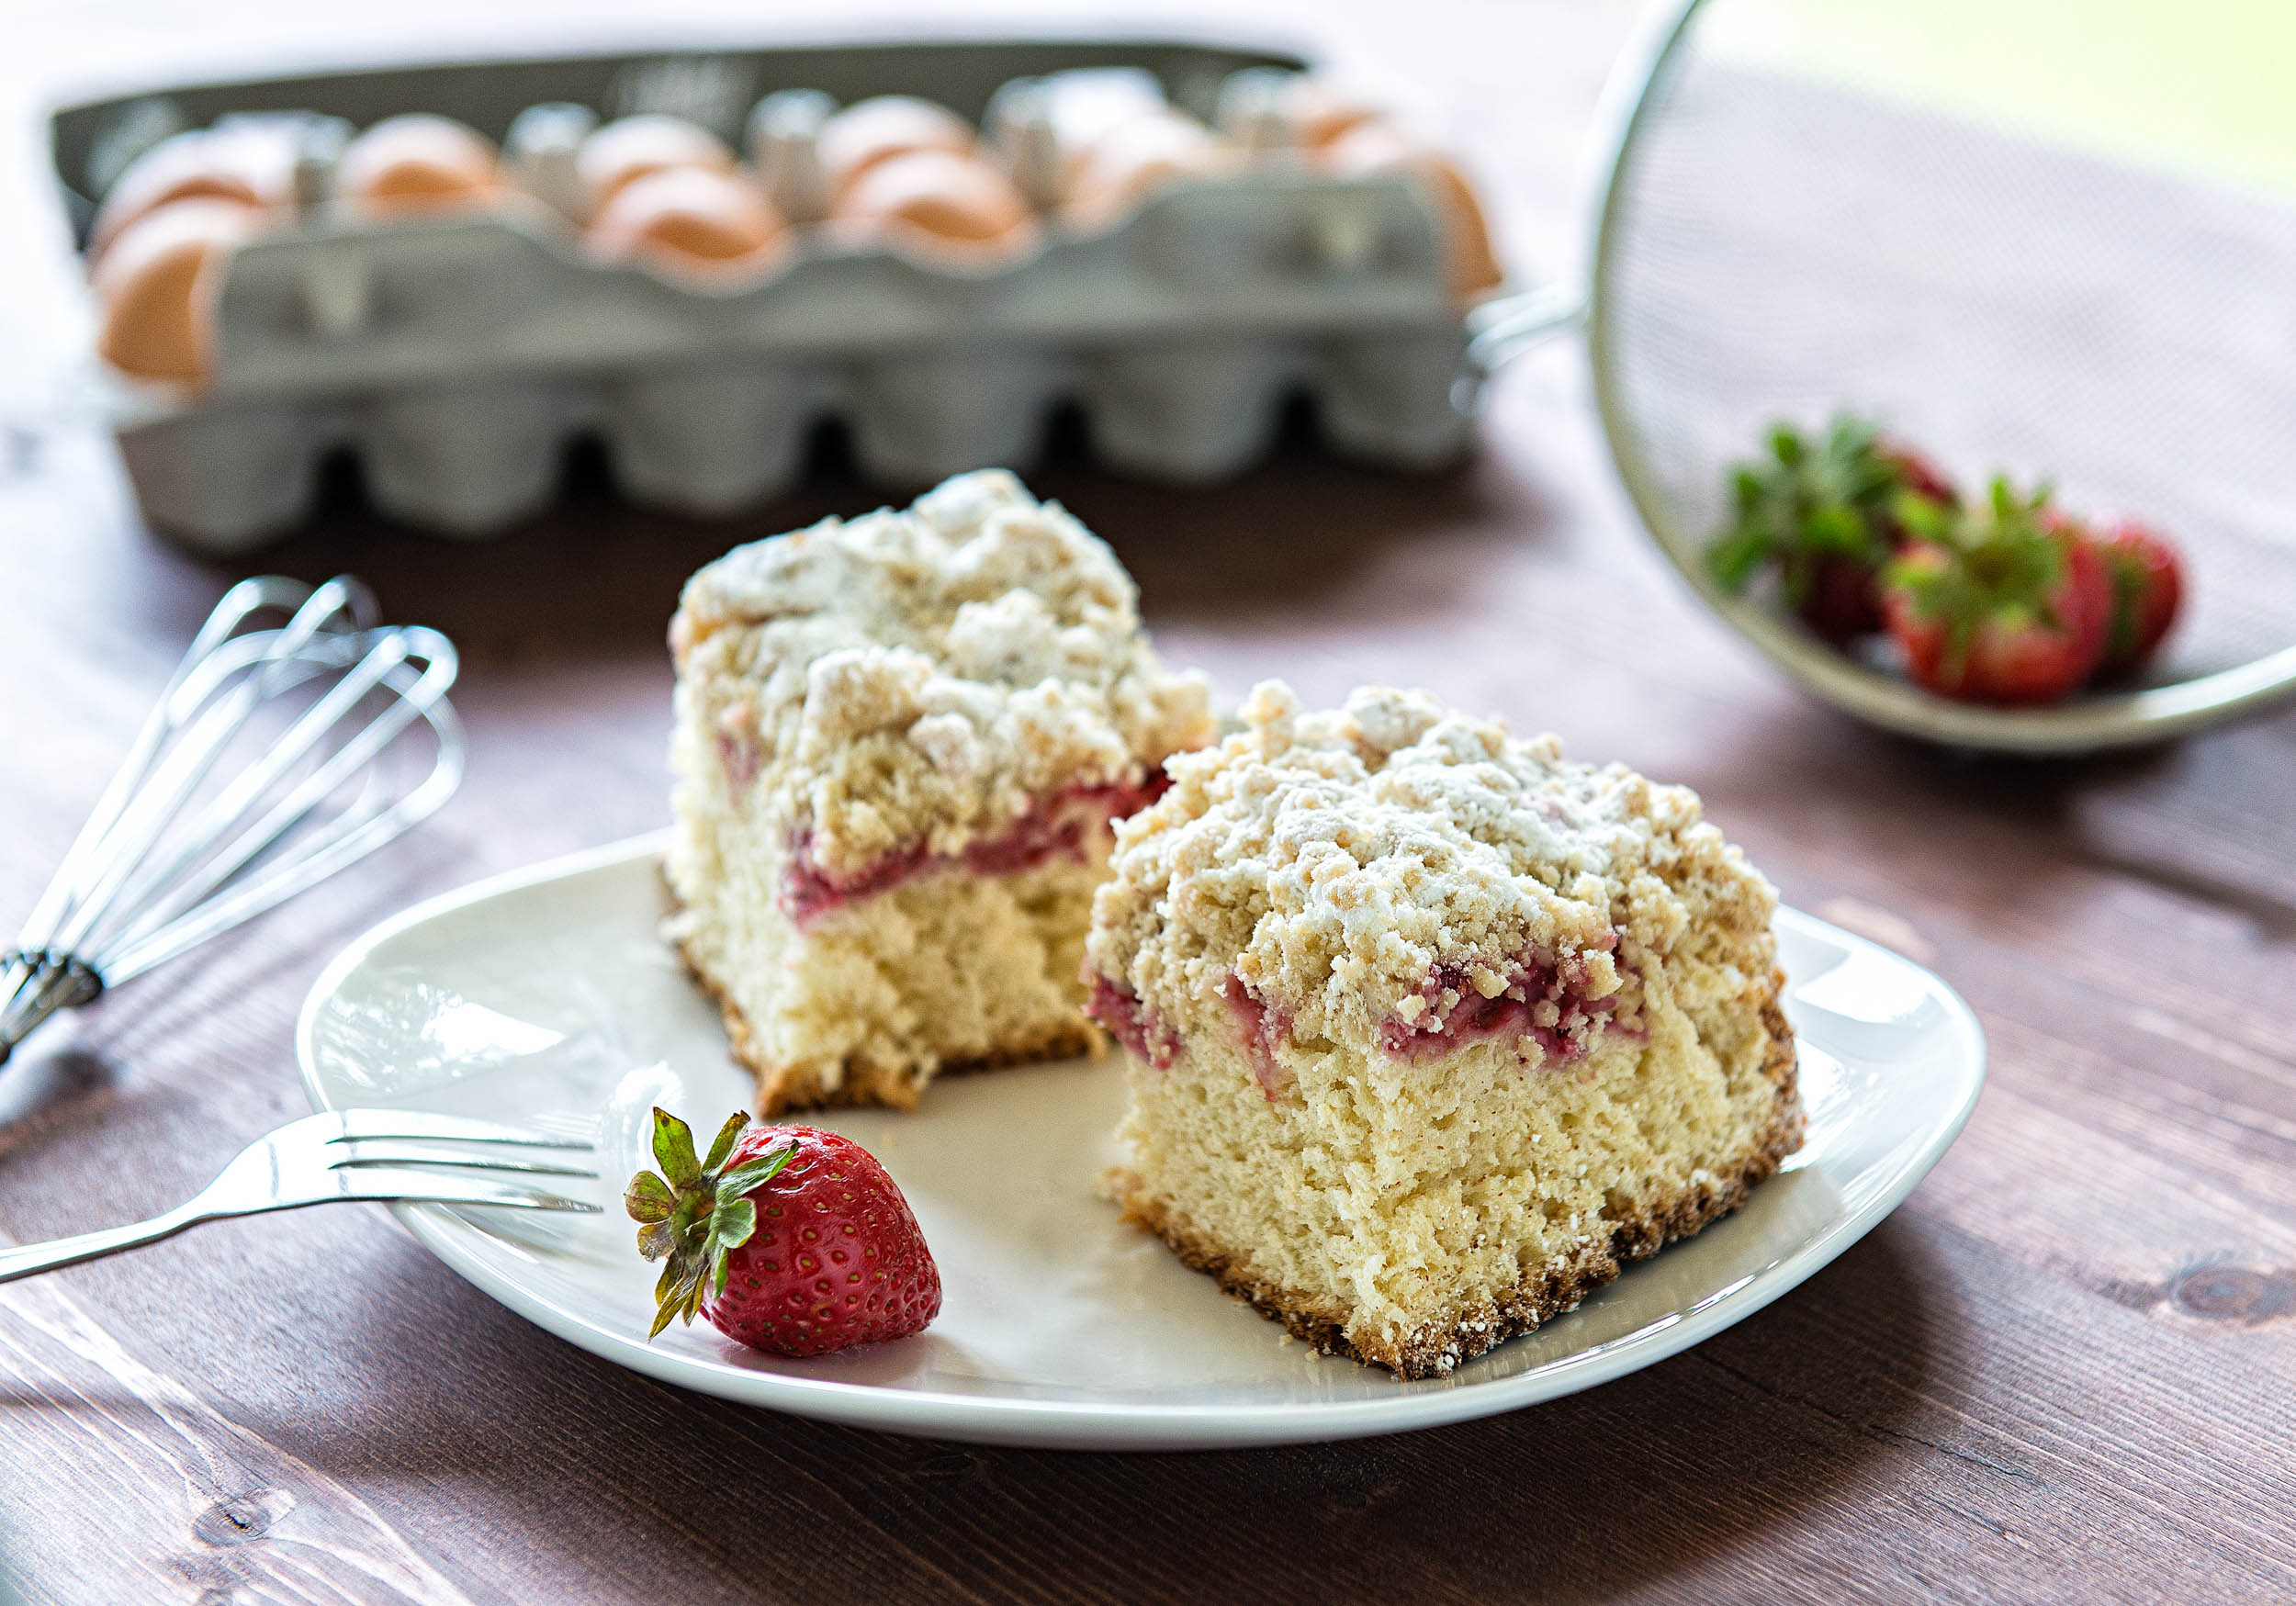 Homemade Yeast Cake with raspberries